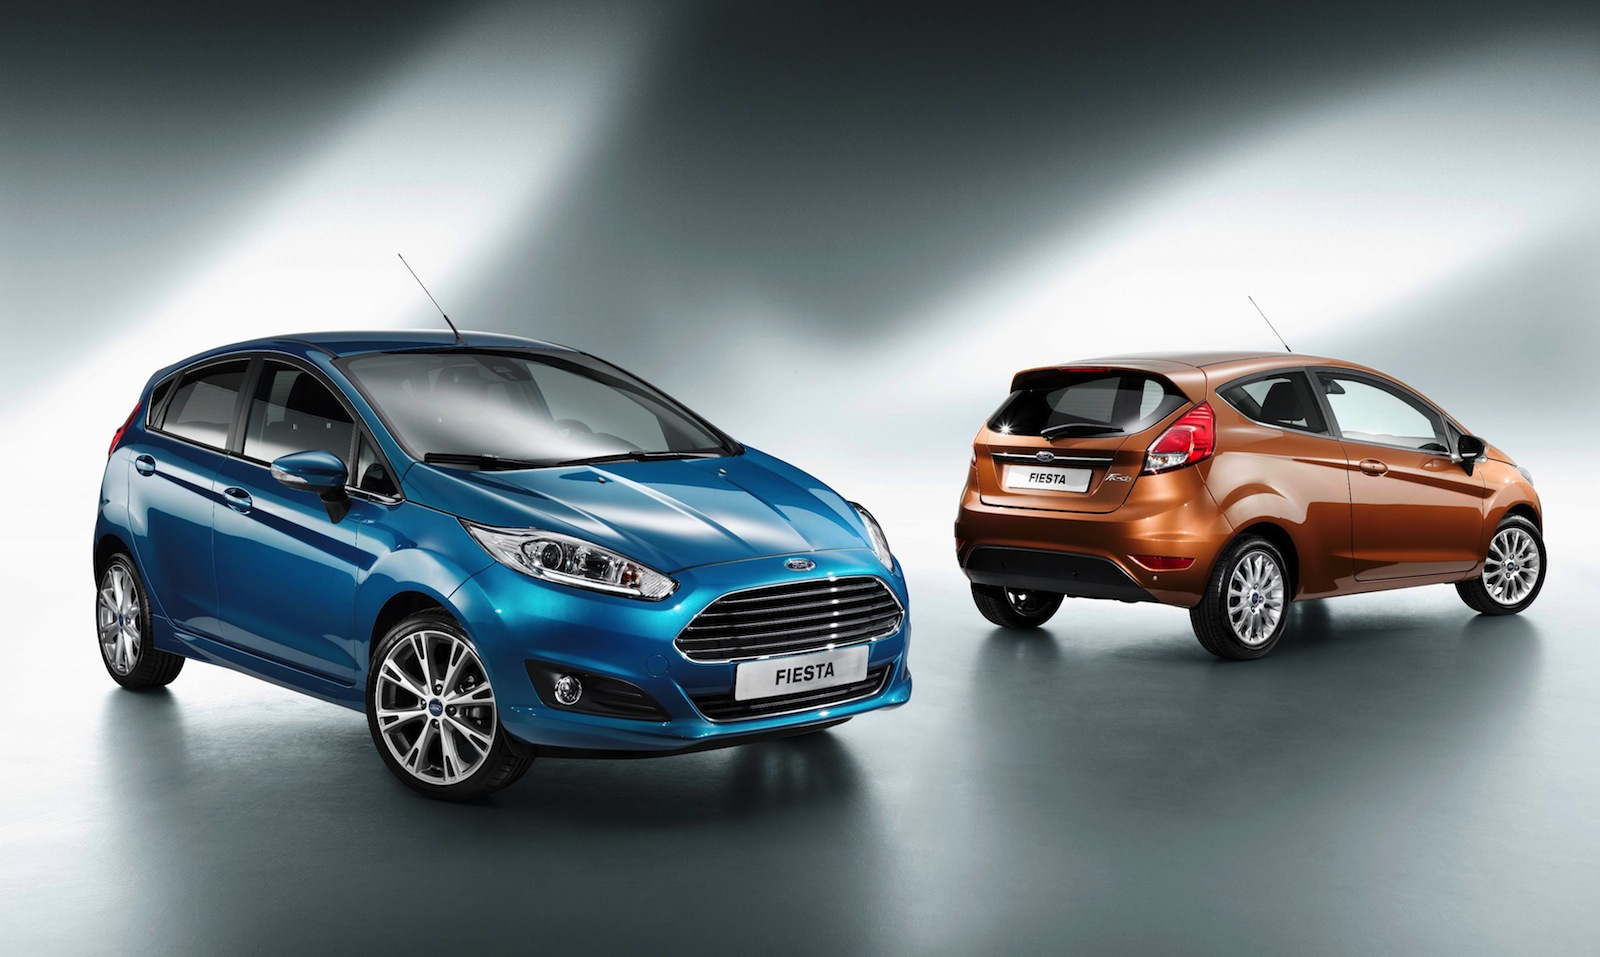 The ford fiesta 2013 women on wheels cars and motoring for women